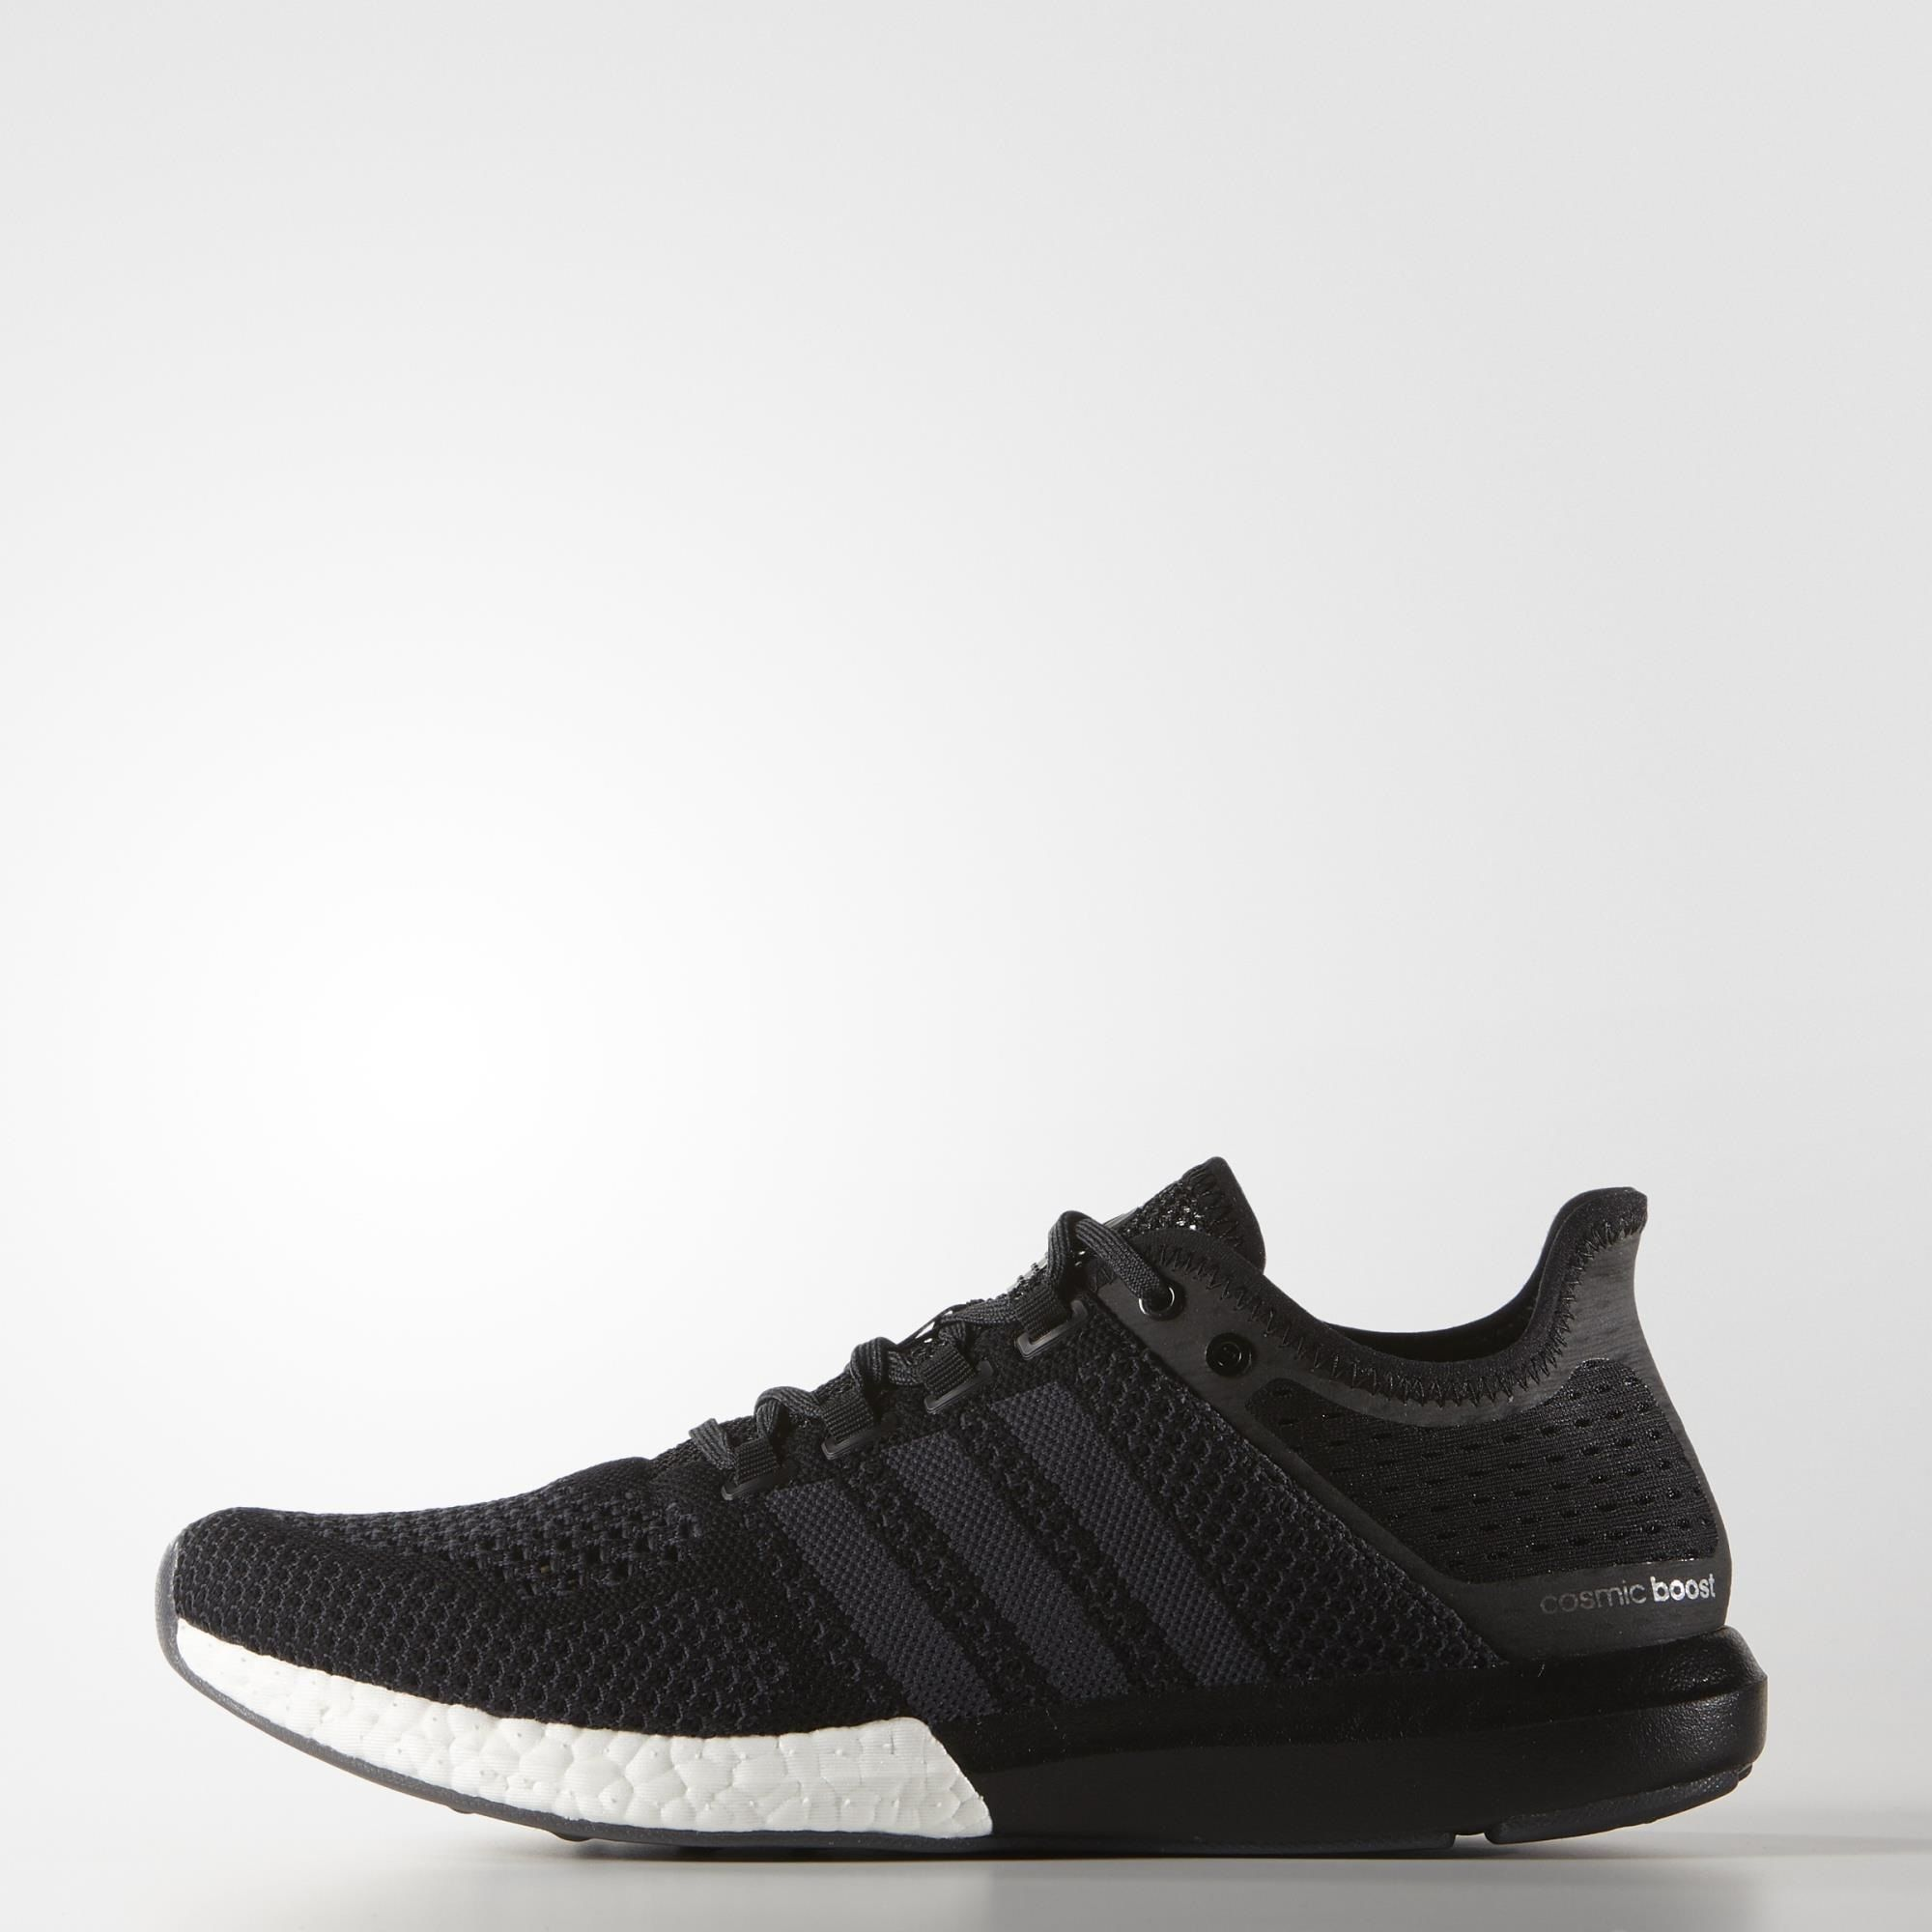 adidas - Climachill Cosmic Boost Shoes Core Black / Grey / Core Black AF6236